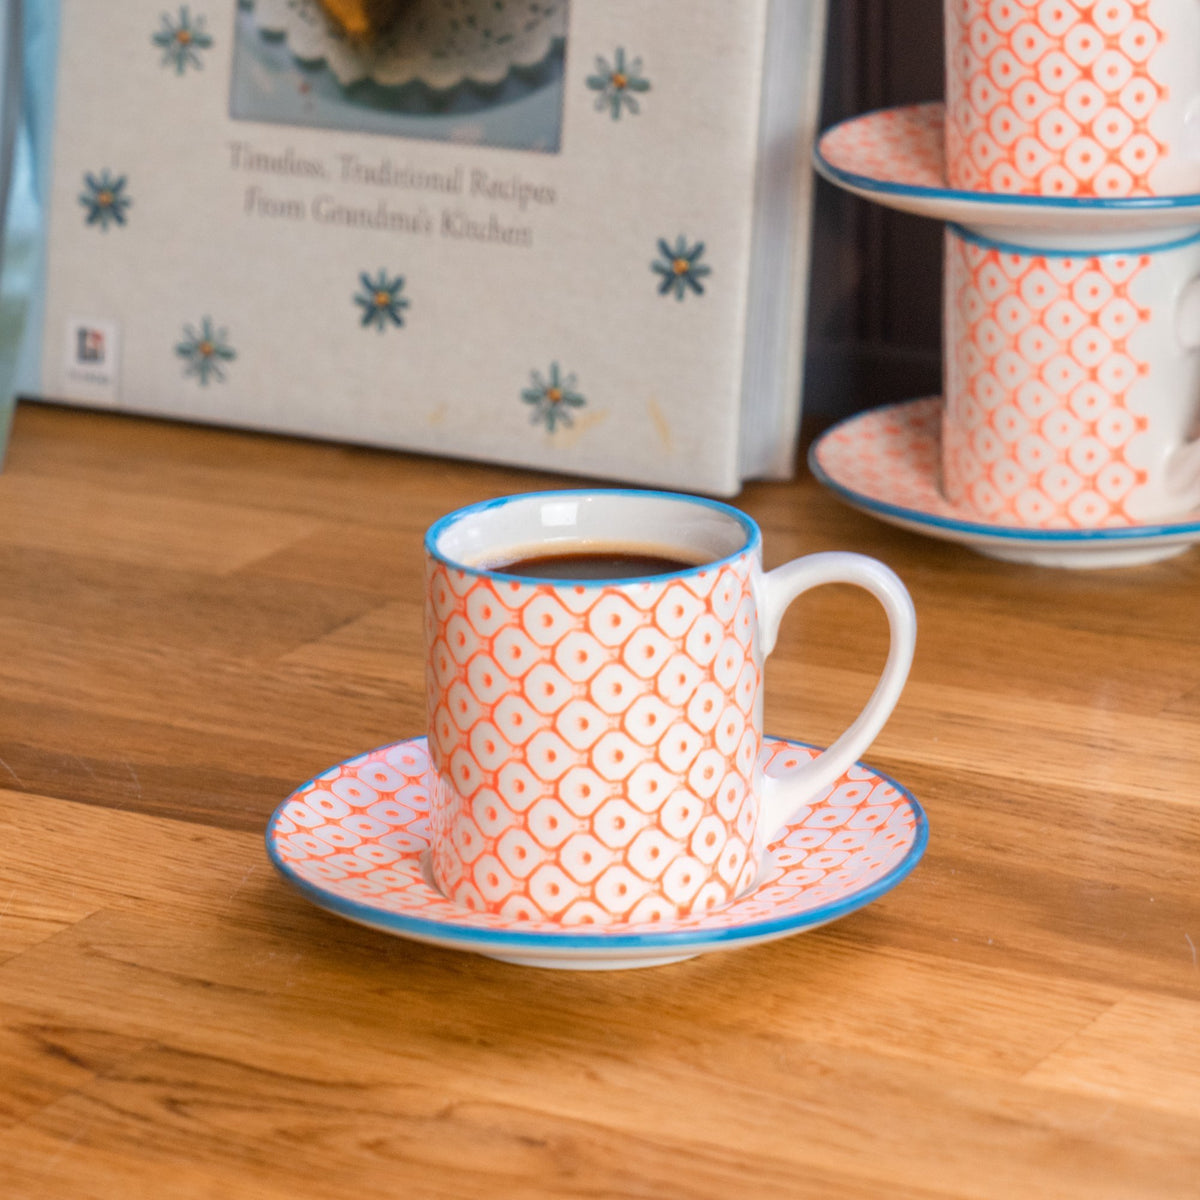 Nicola Spring Patterned Espresso Cup and Saucer Set - Orange and Blue